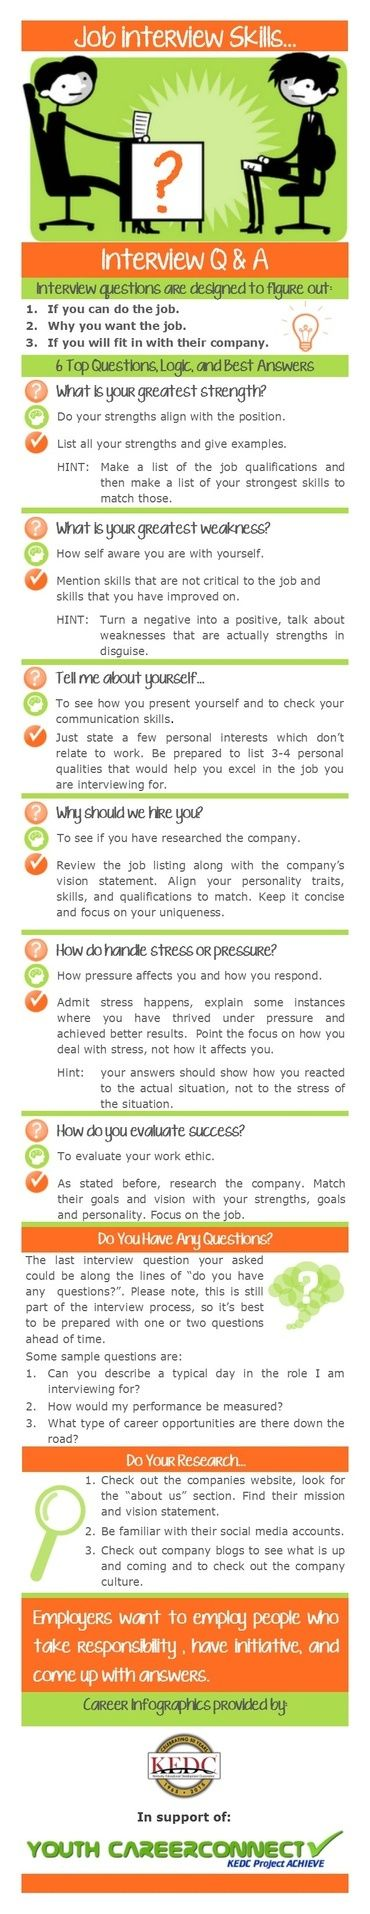 10 best images about Useful tips on Pinterest Resume, Cover letter